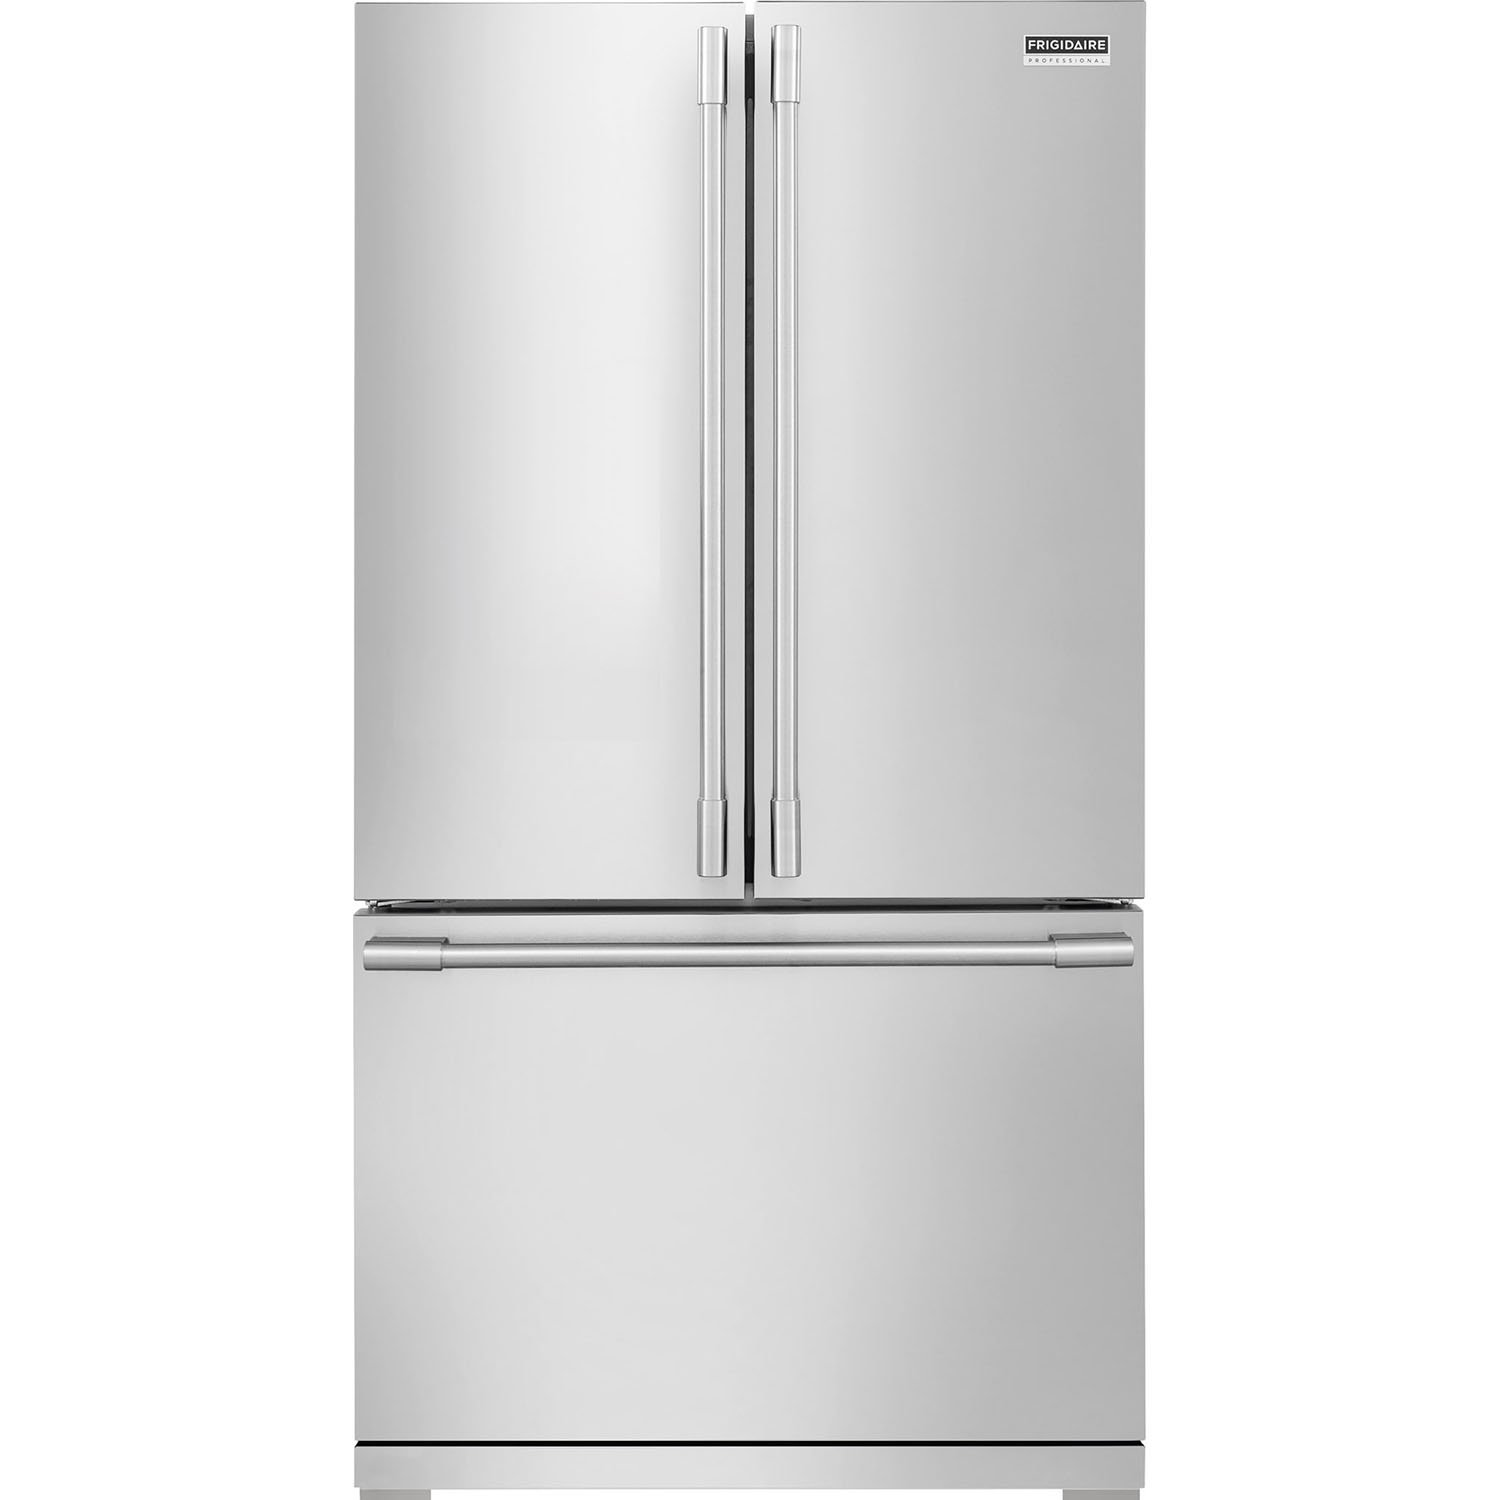 ft compact with frigidaire black refrigerator terrific interior door cu kitchenaid of french